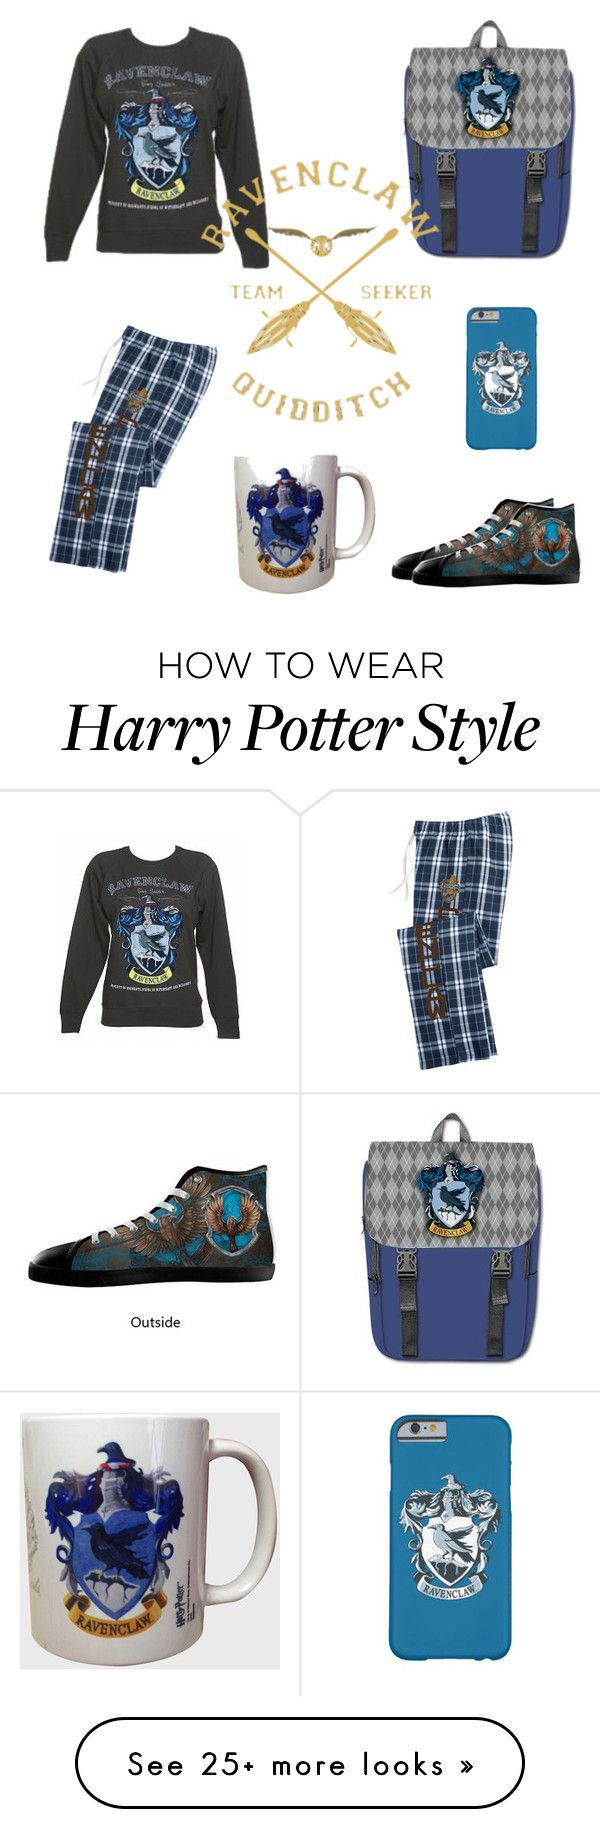 """""""Ravenclaw! My team!"""" by stylebyaa on Polyvore"""